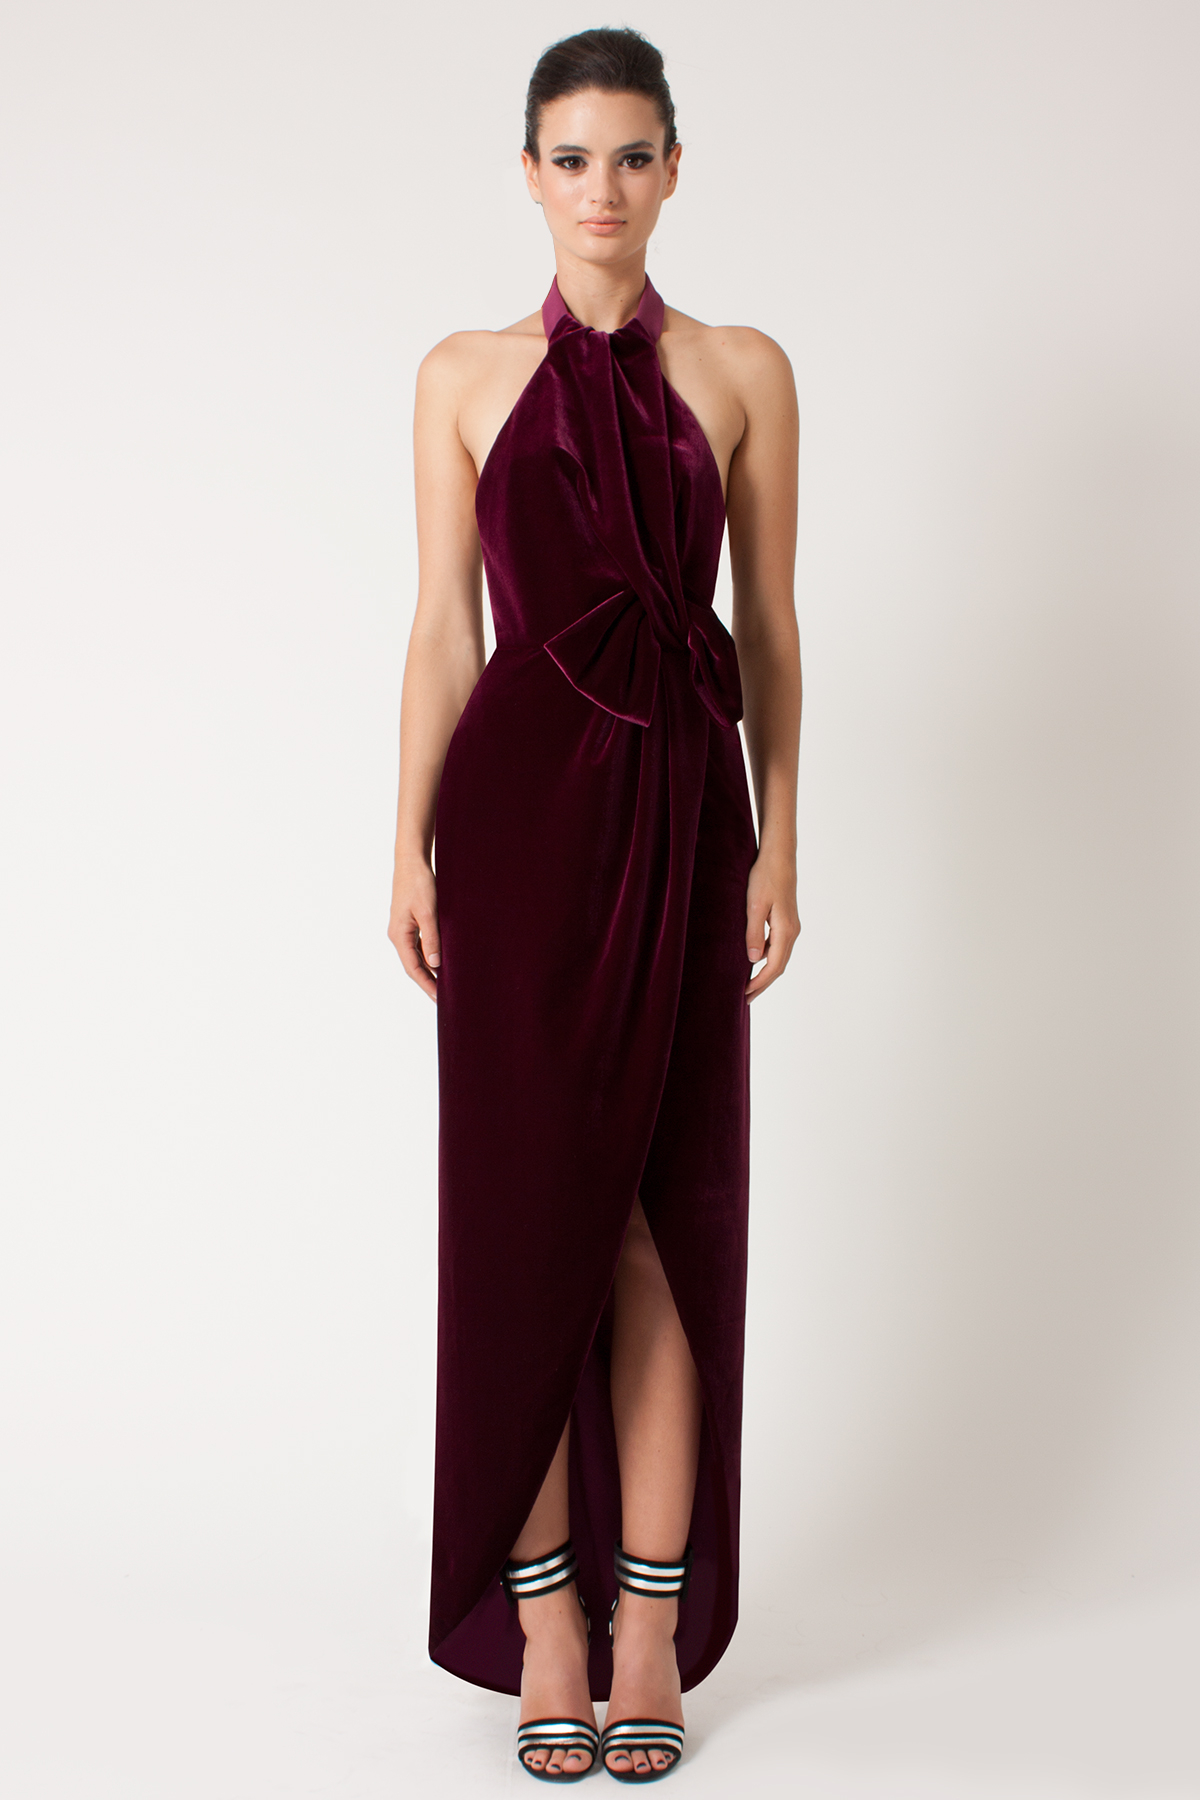 Black Halo Admire Gown in Red - Lyst